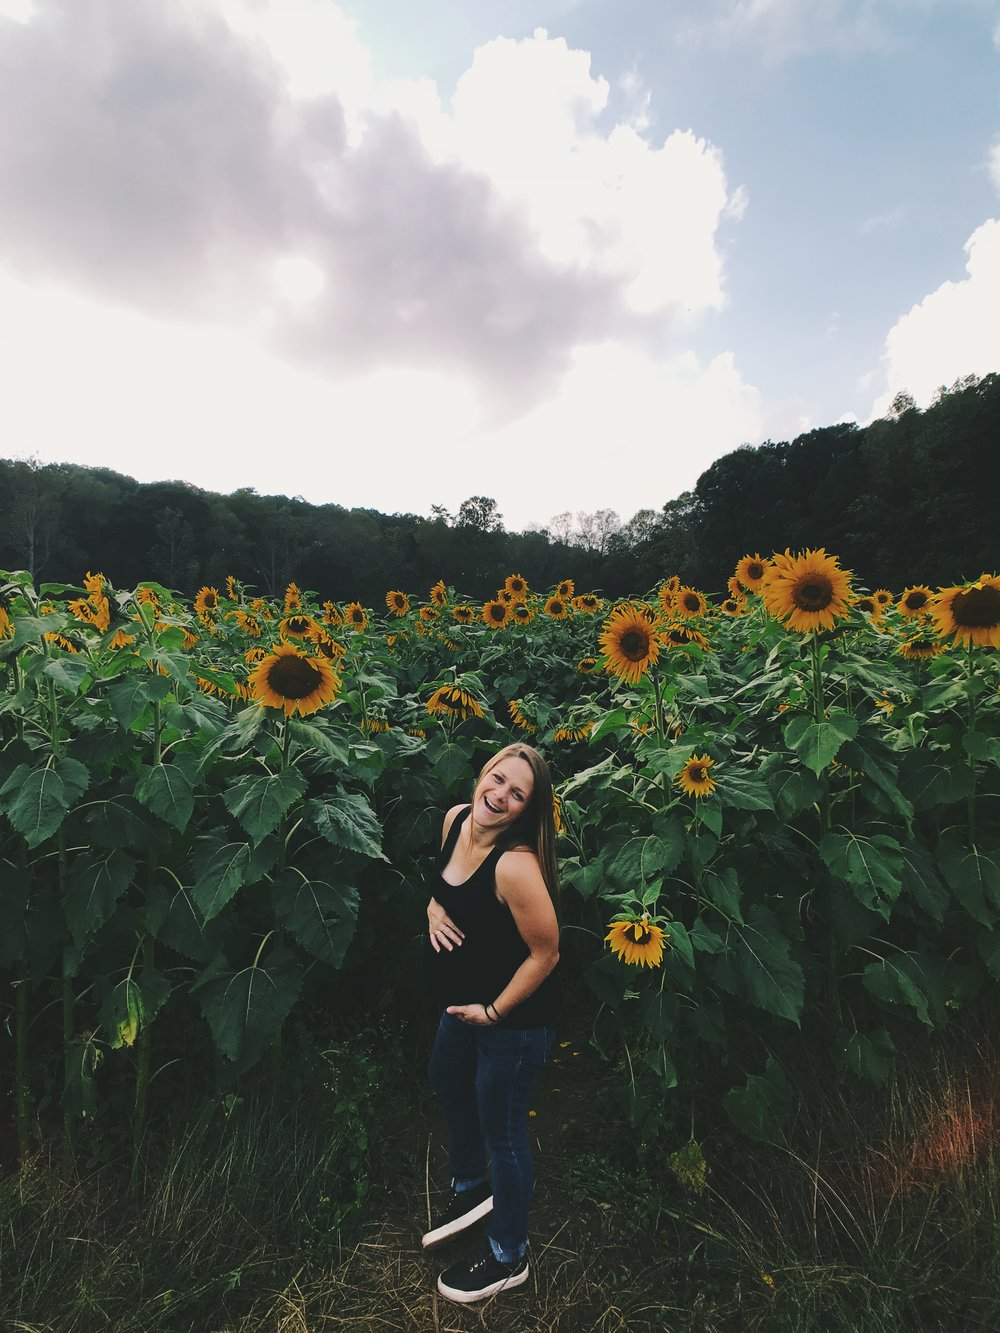 A little birthday snap in a sunflower field by my love  @patrickkolts